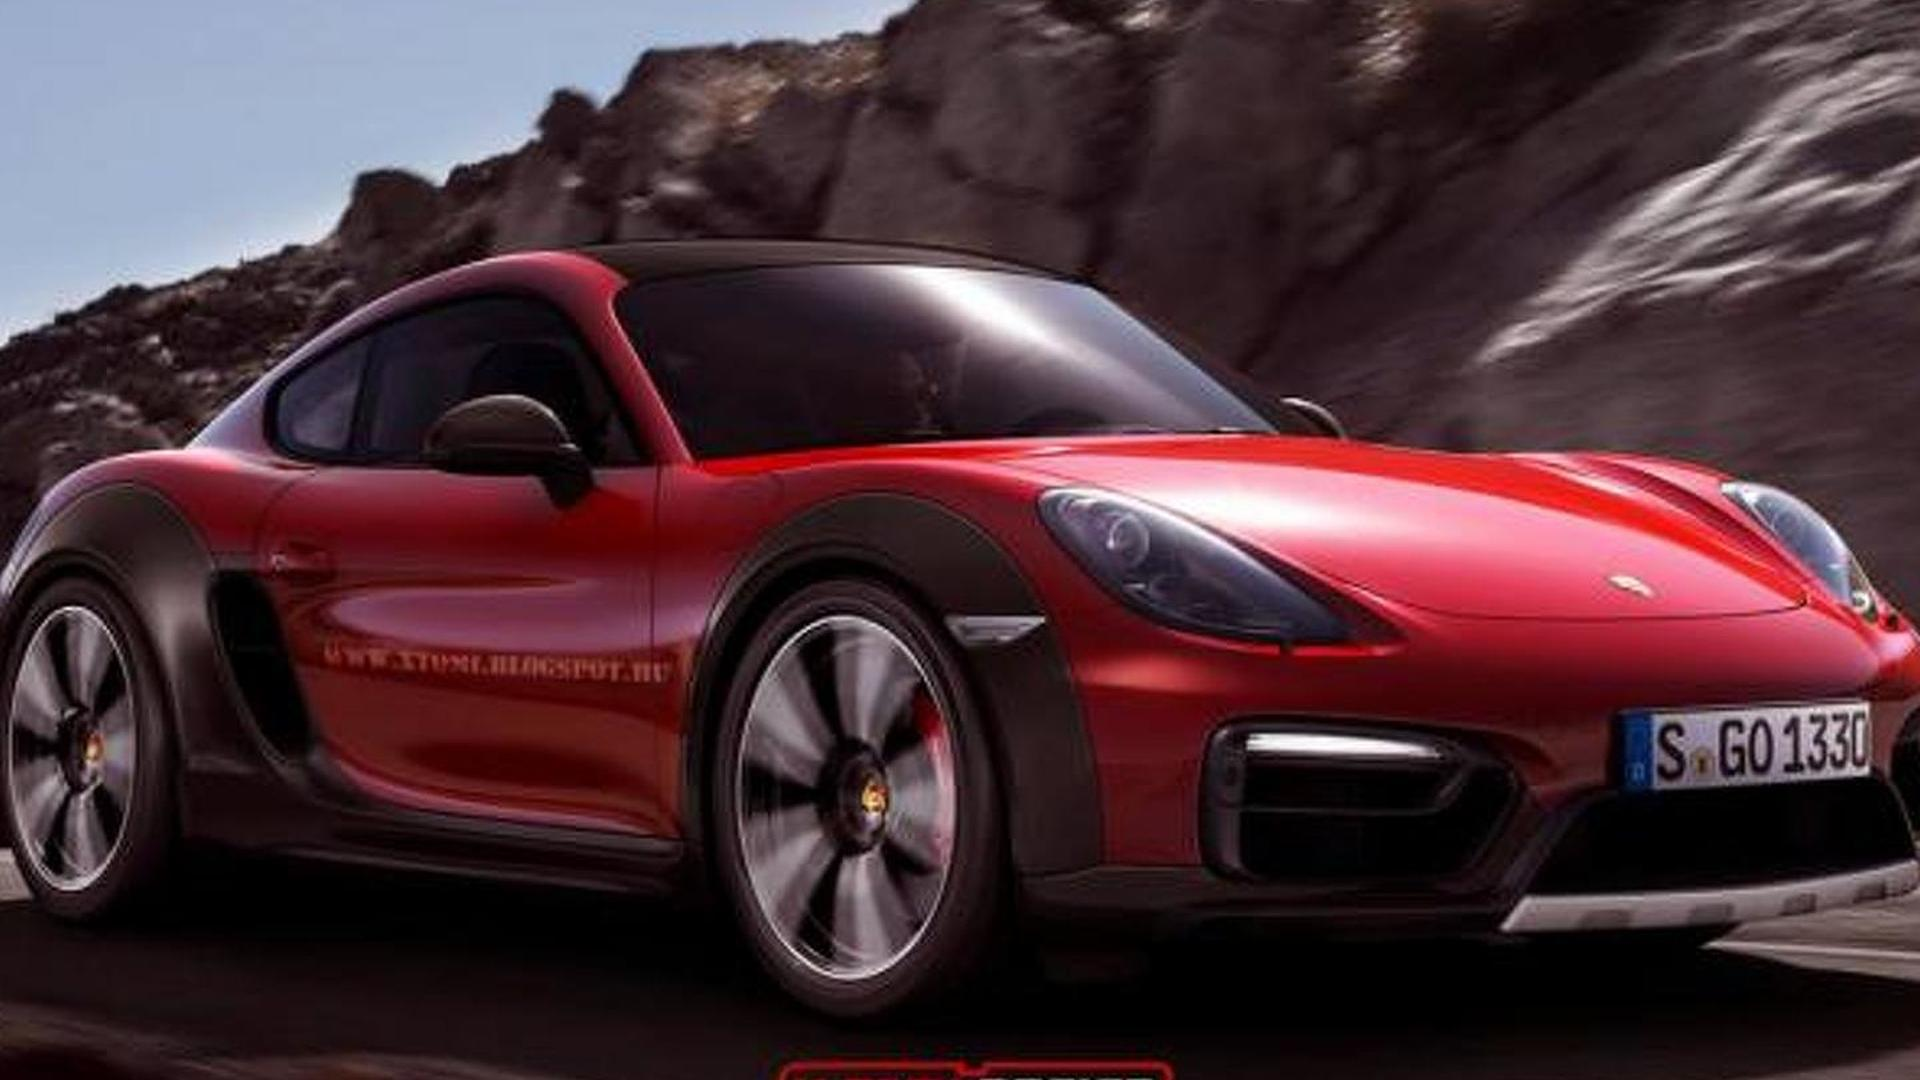 Porsche Cayman Safari render is not a bad idea